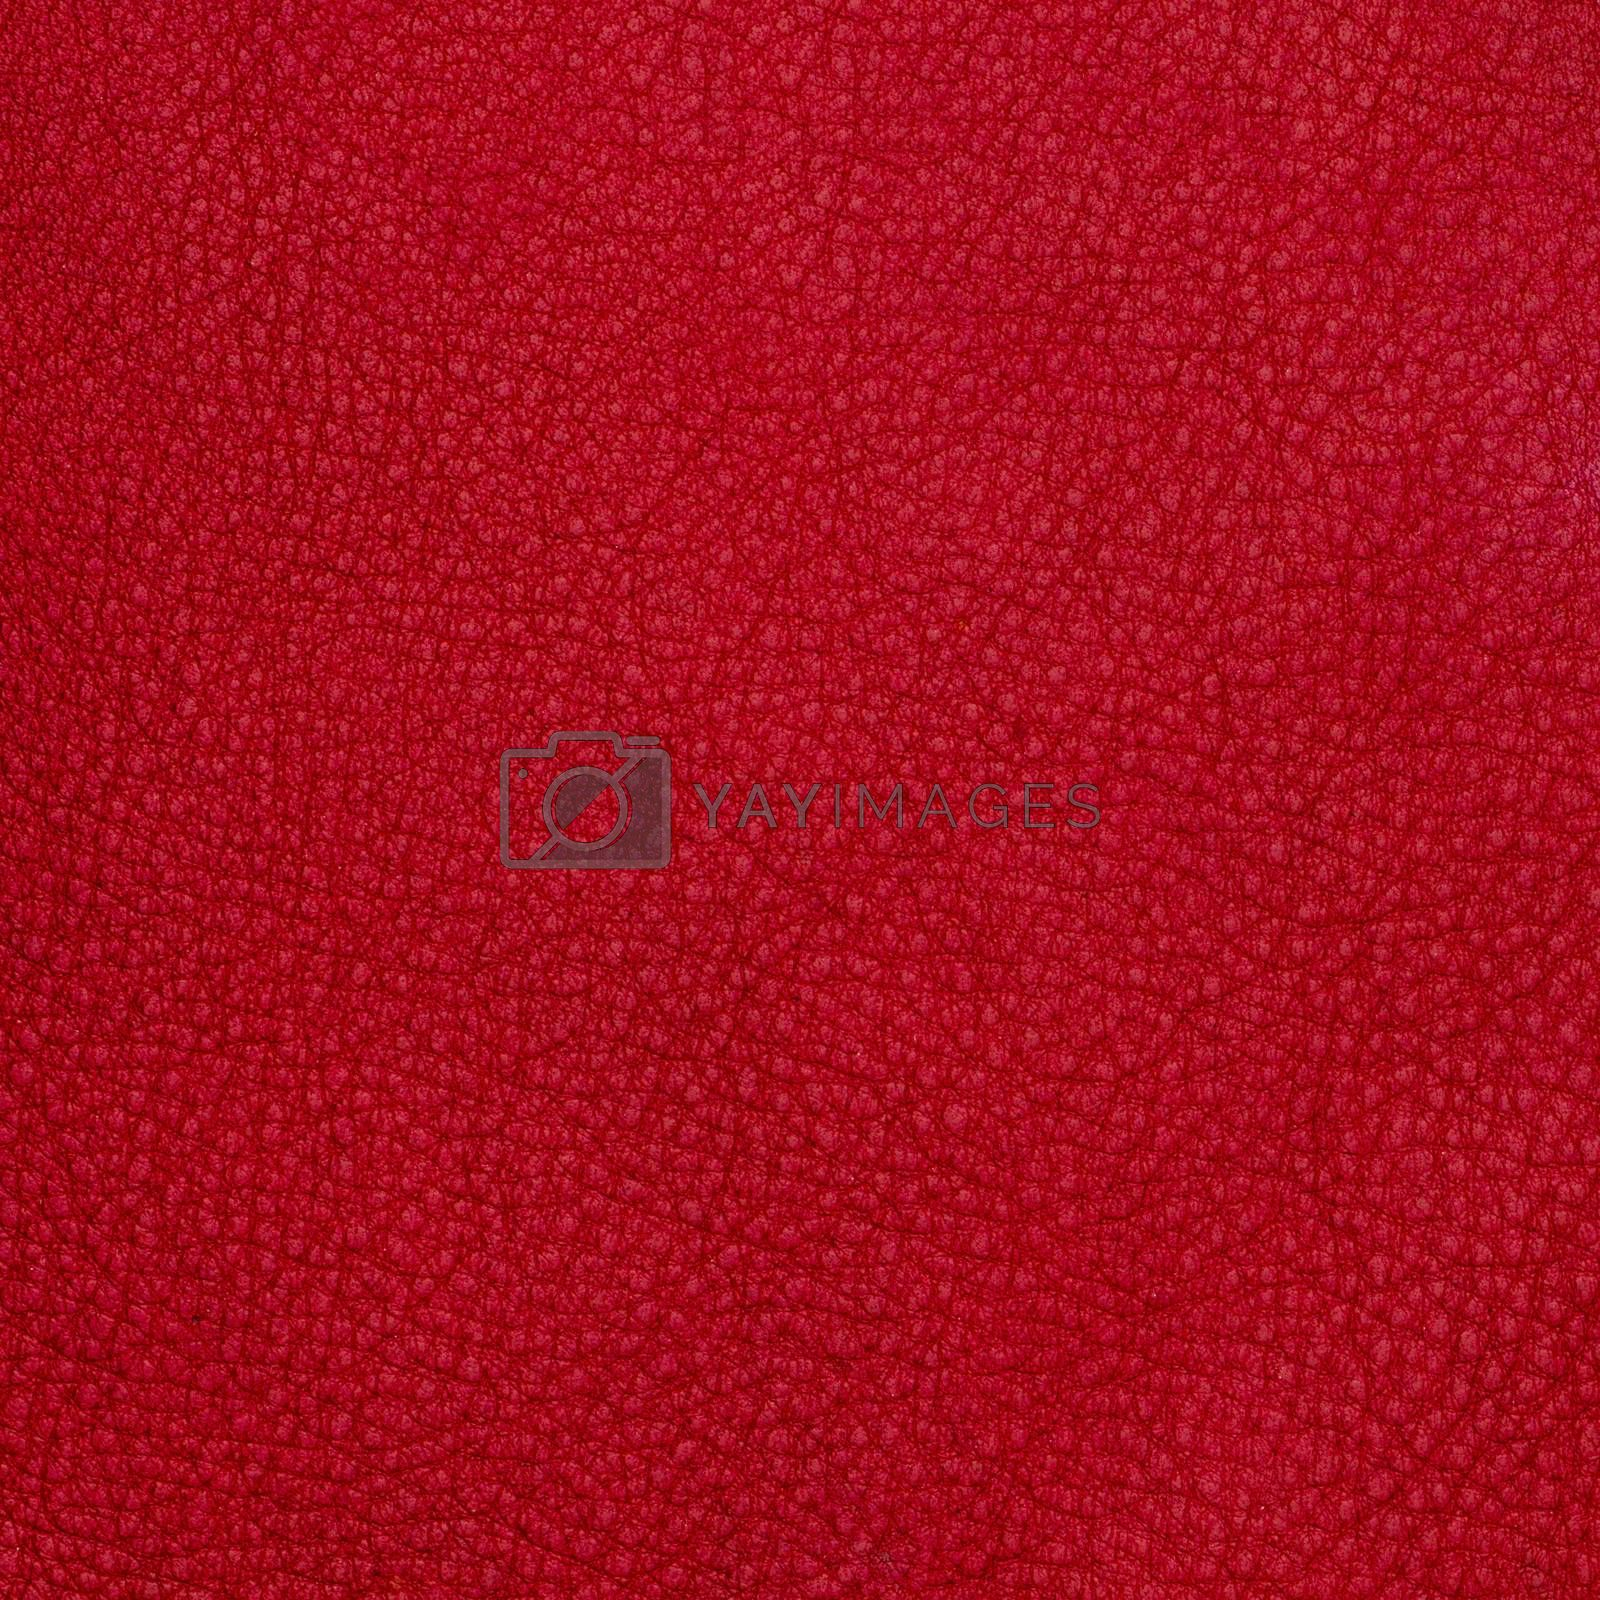 Red leather texture background.